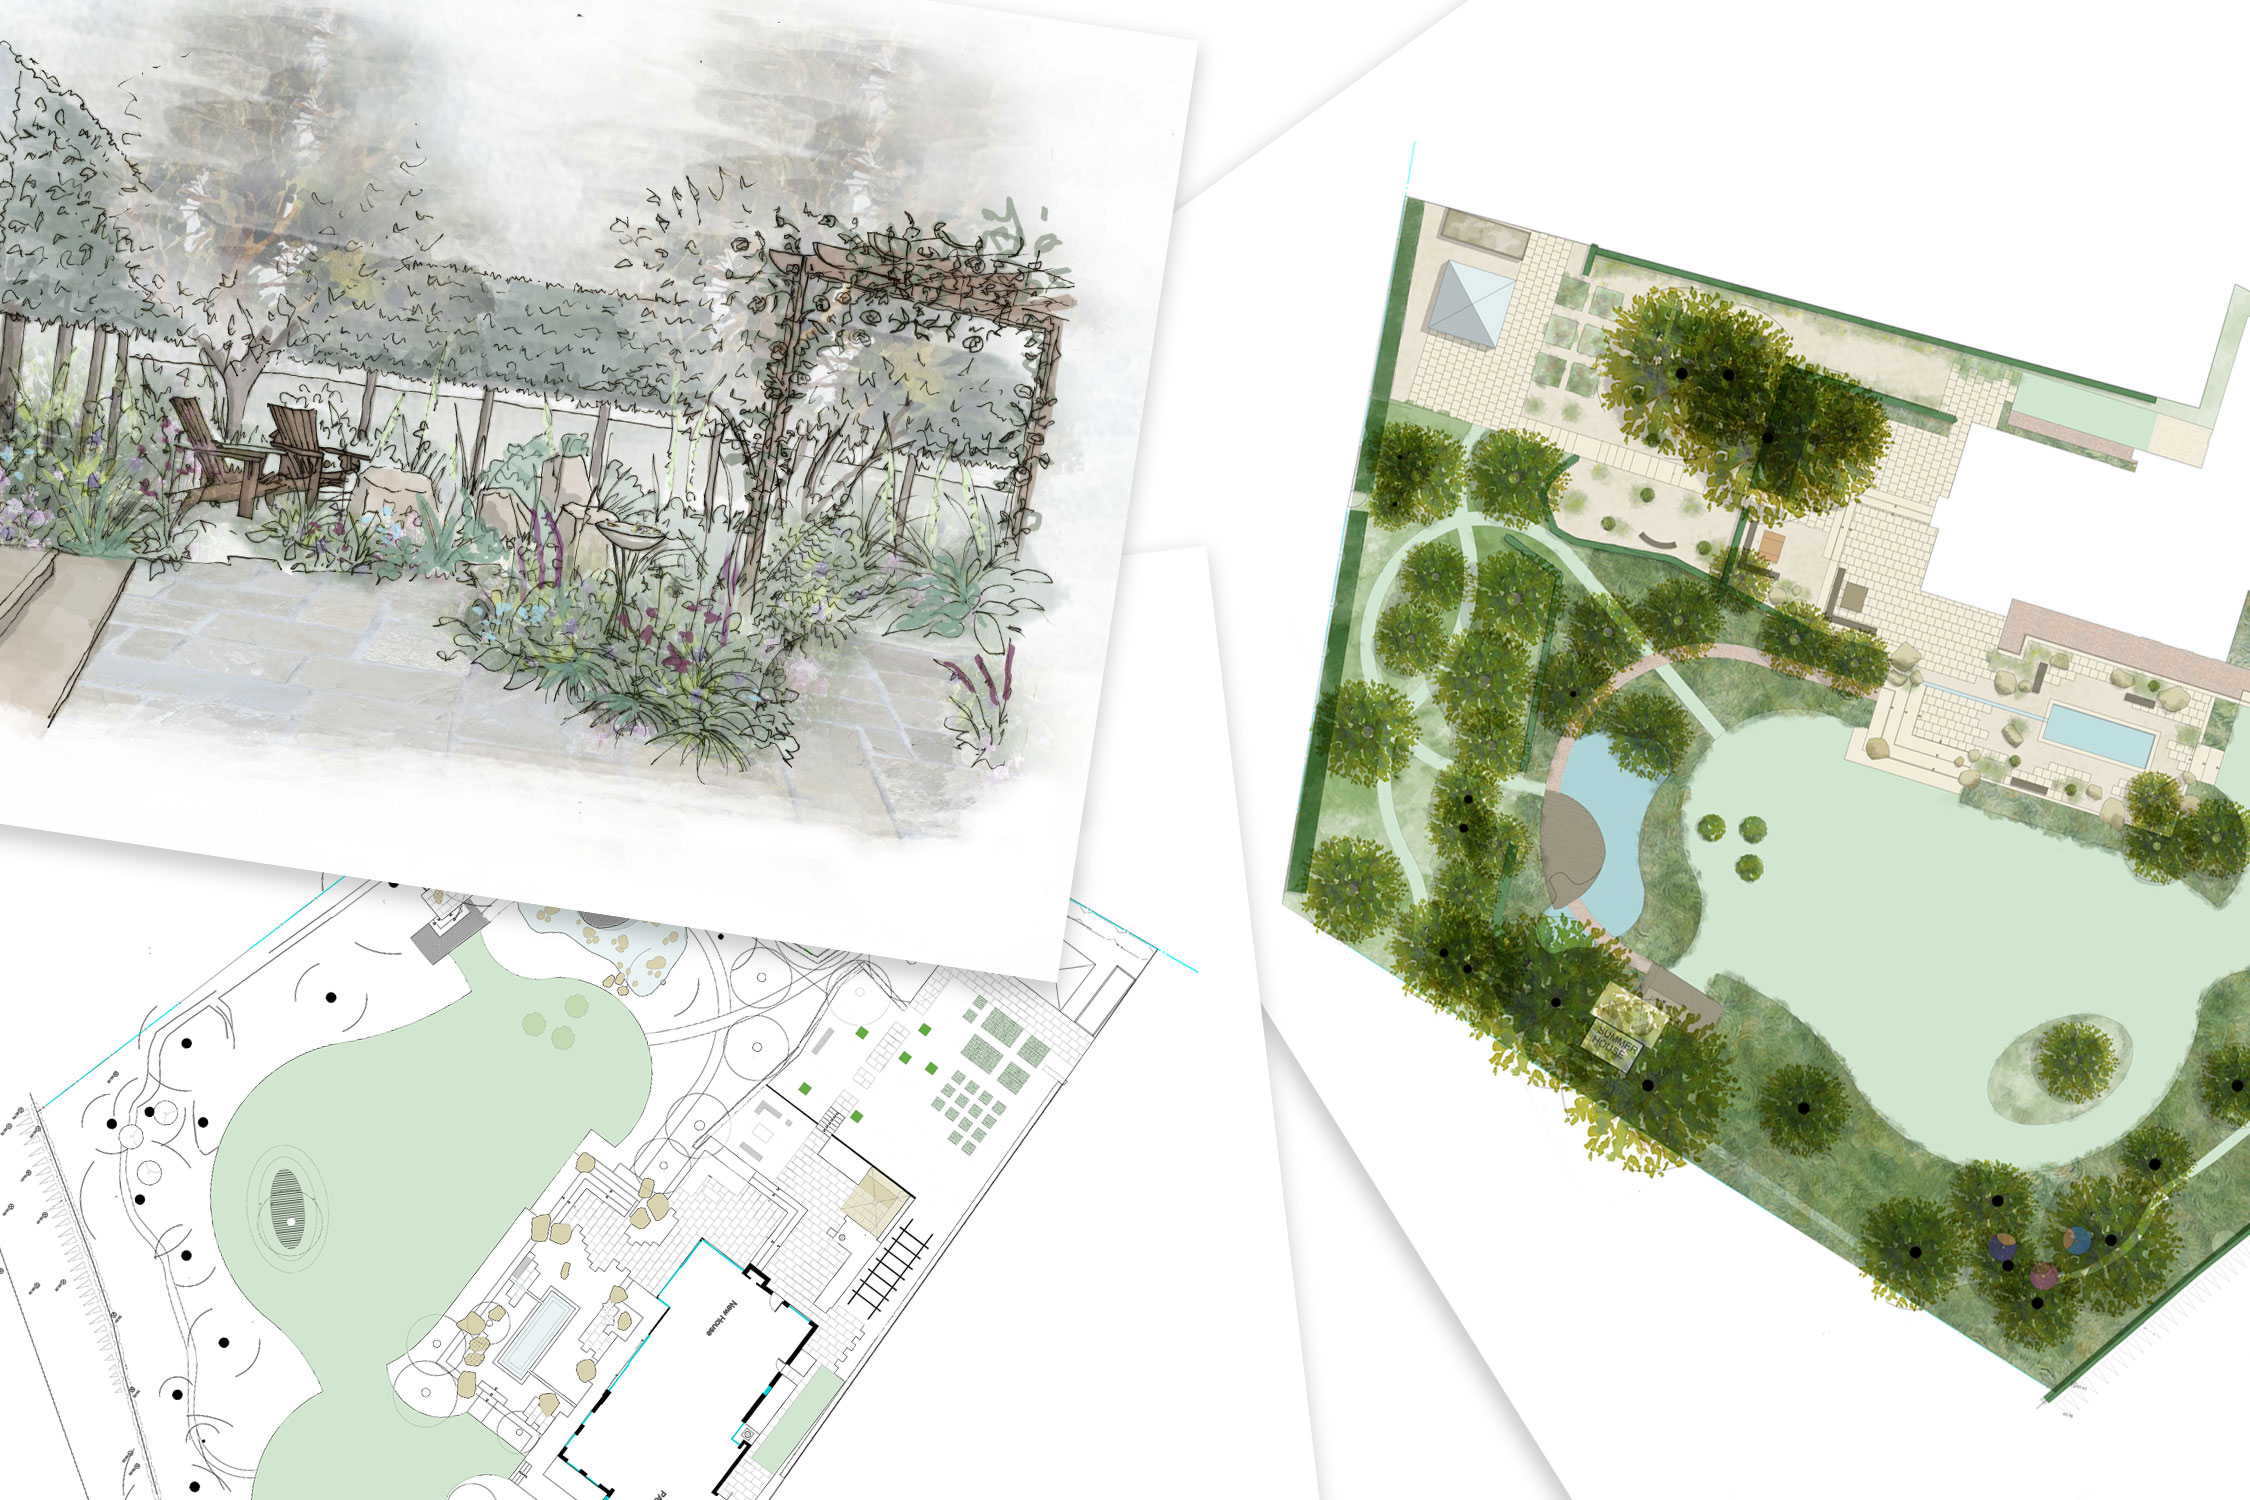 Design layout drawings by Adam Frost and his Team